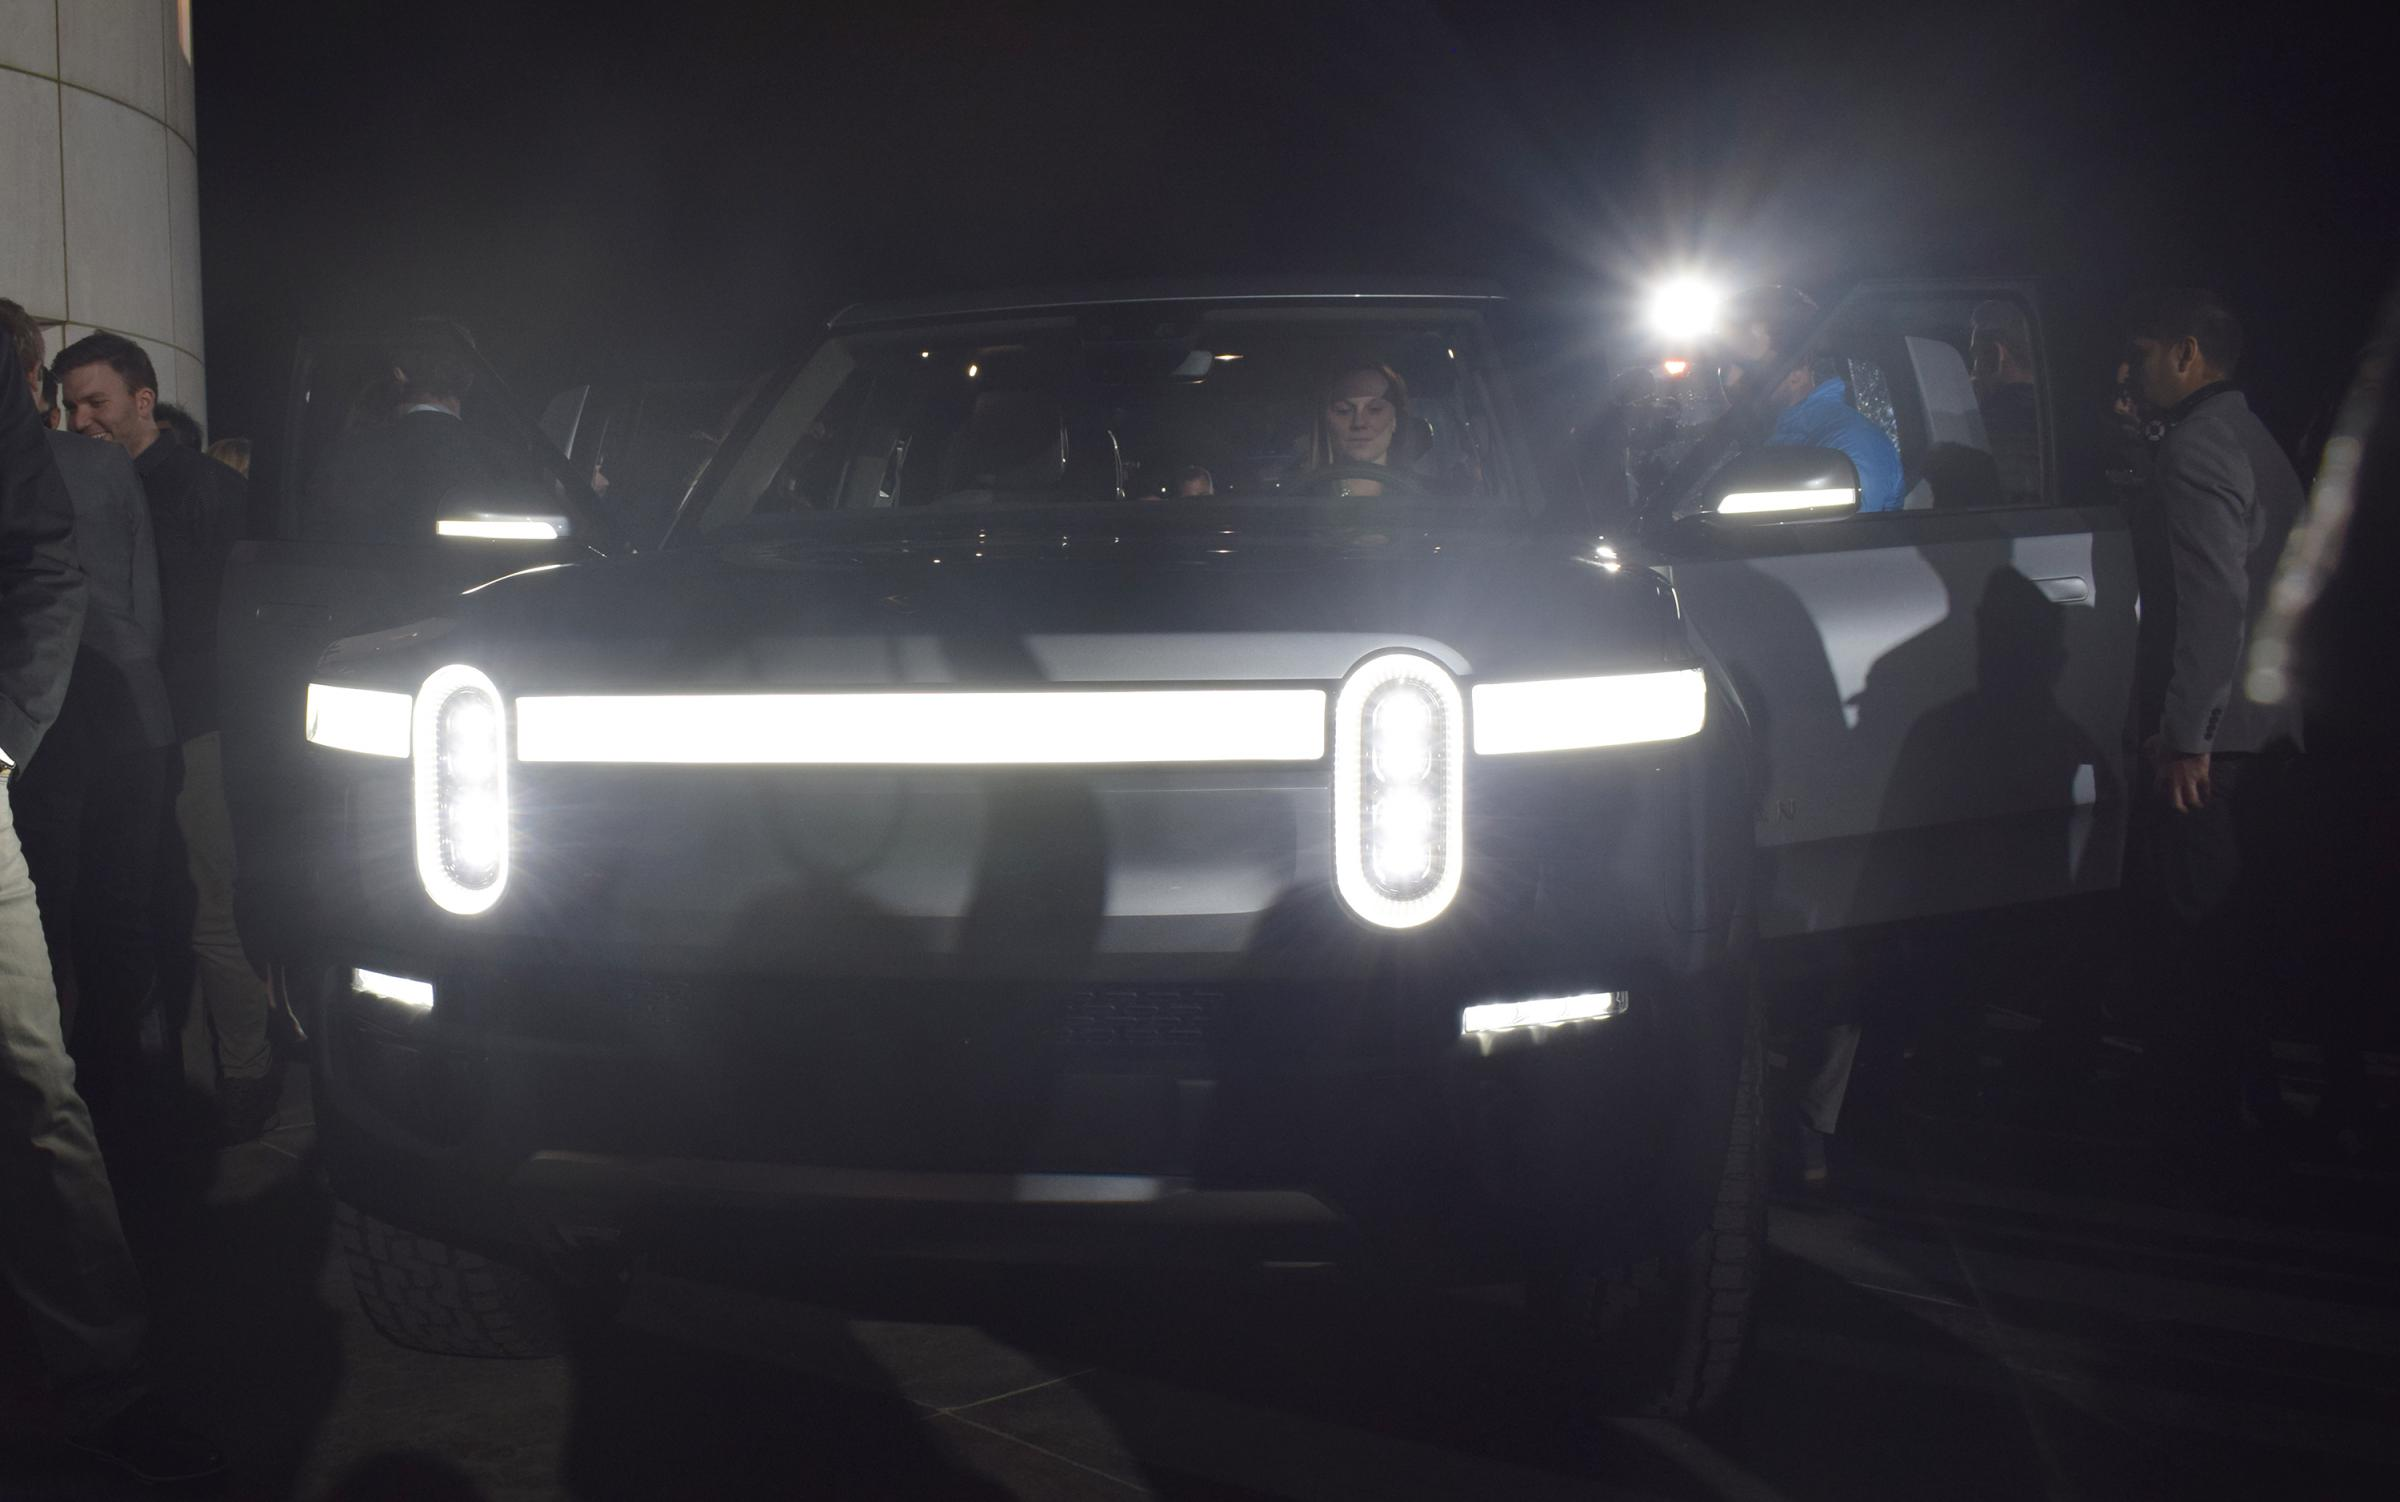 The signature front light bar of the Rivian R1T pickup truck (photo courtesy of Ryan Denham/WGLT)